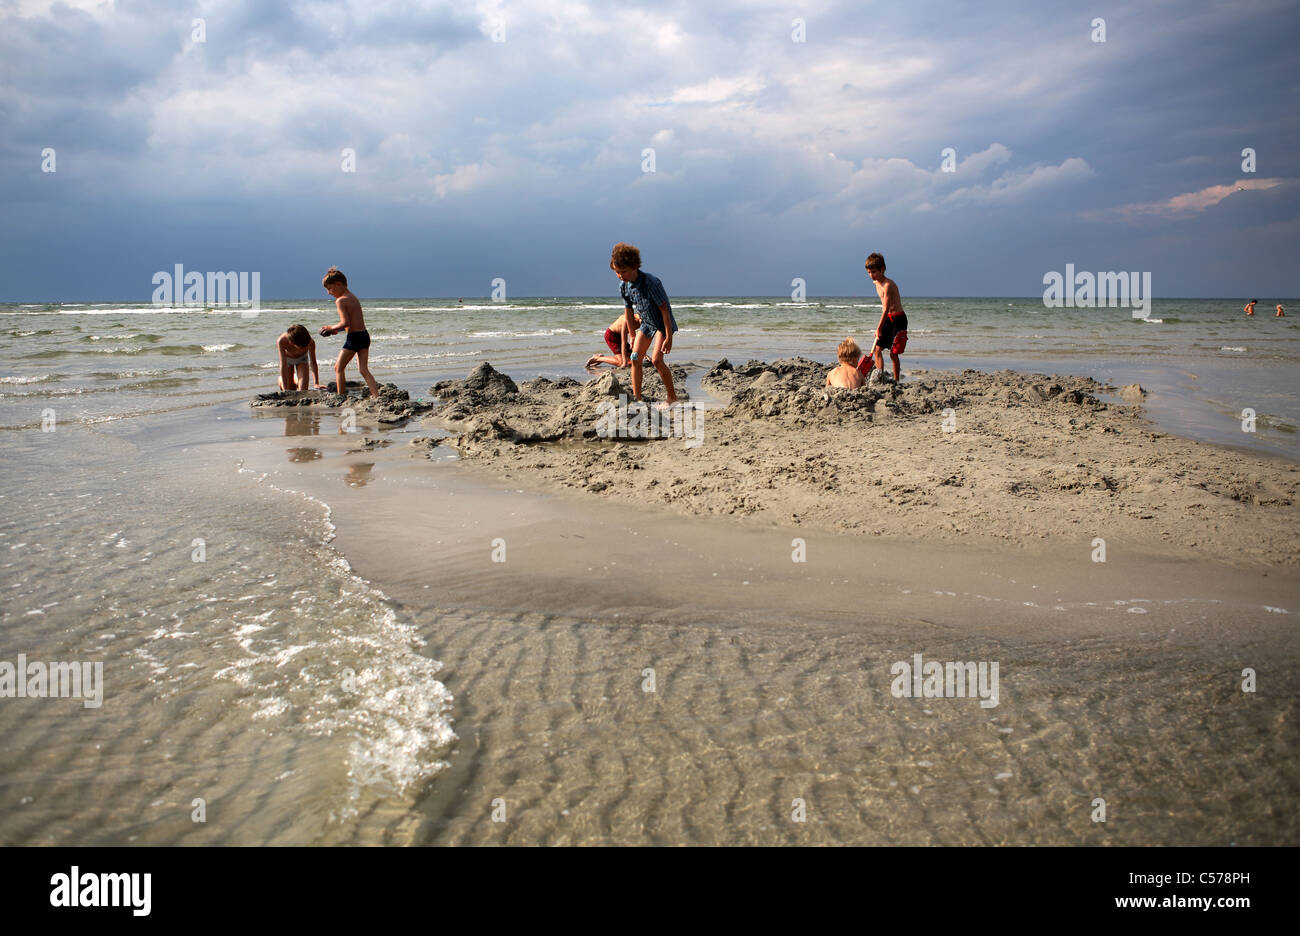 Children playing in the sand on a beach Stock Photo